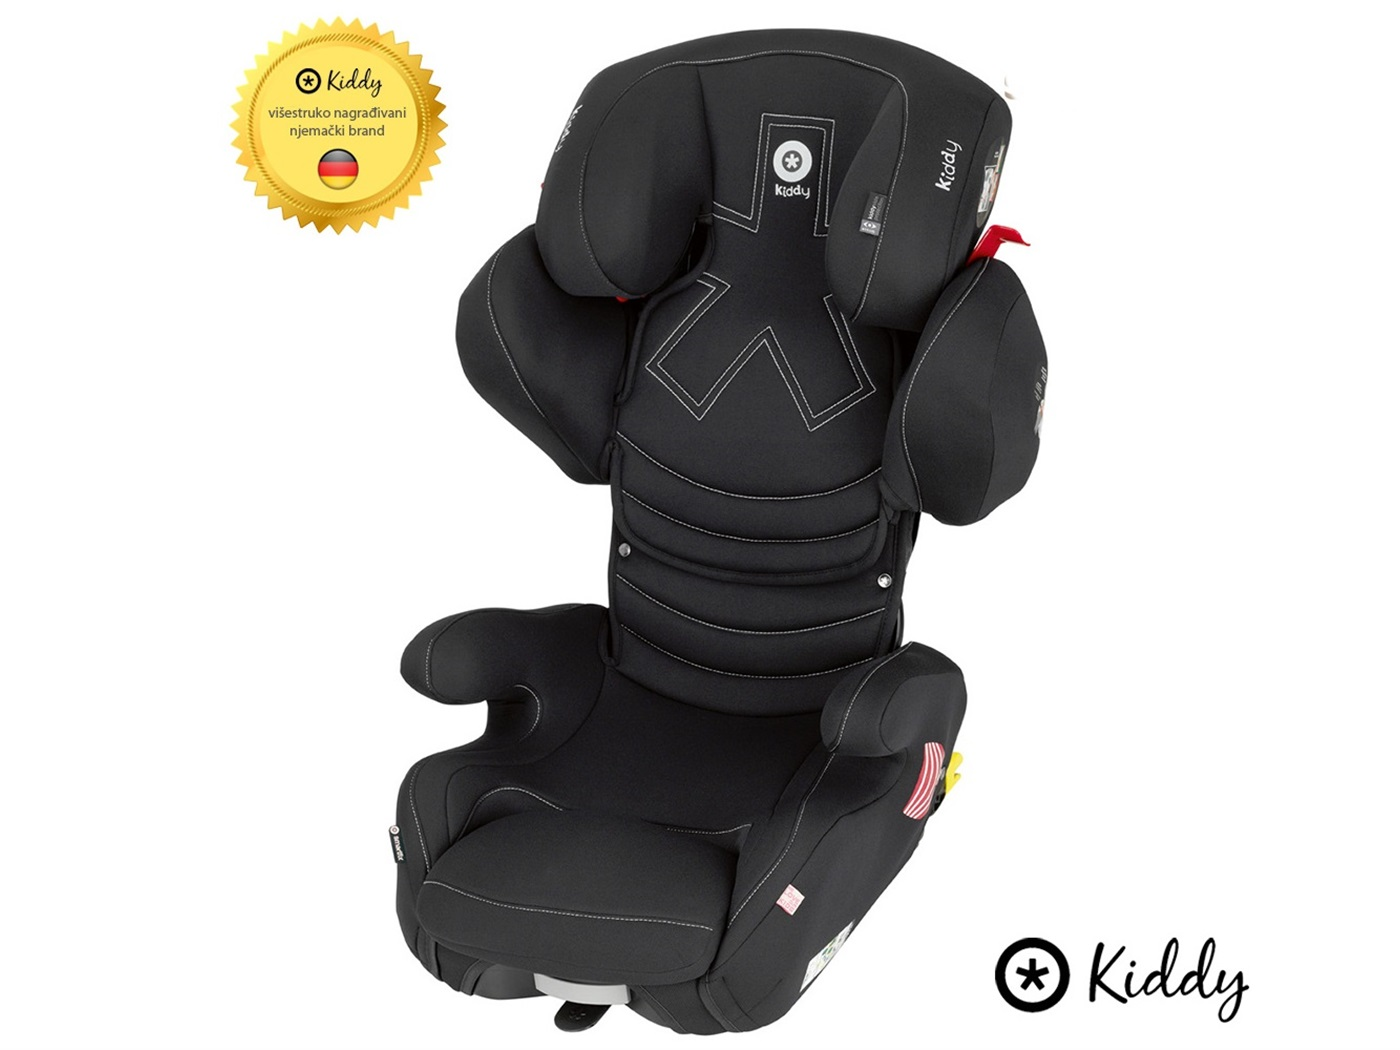 Kiddy SmartFix boja Manhattan